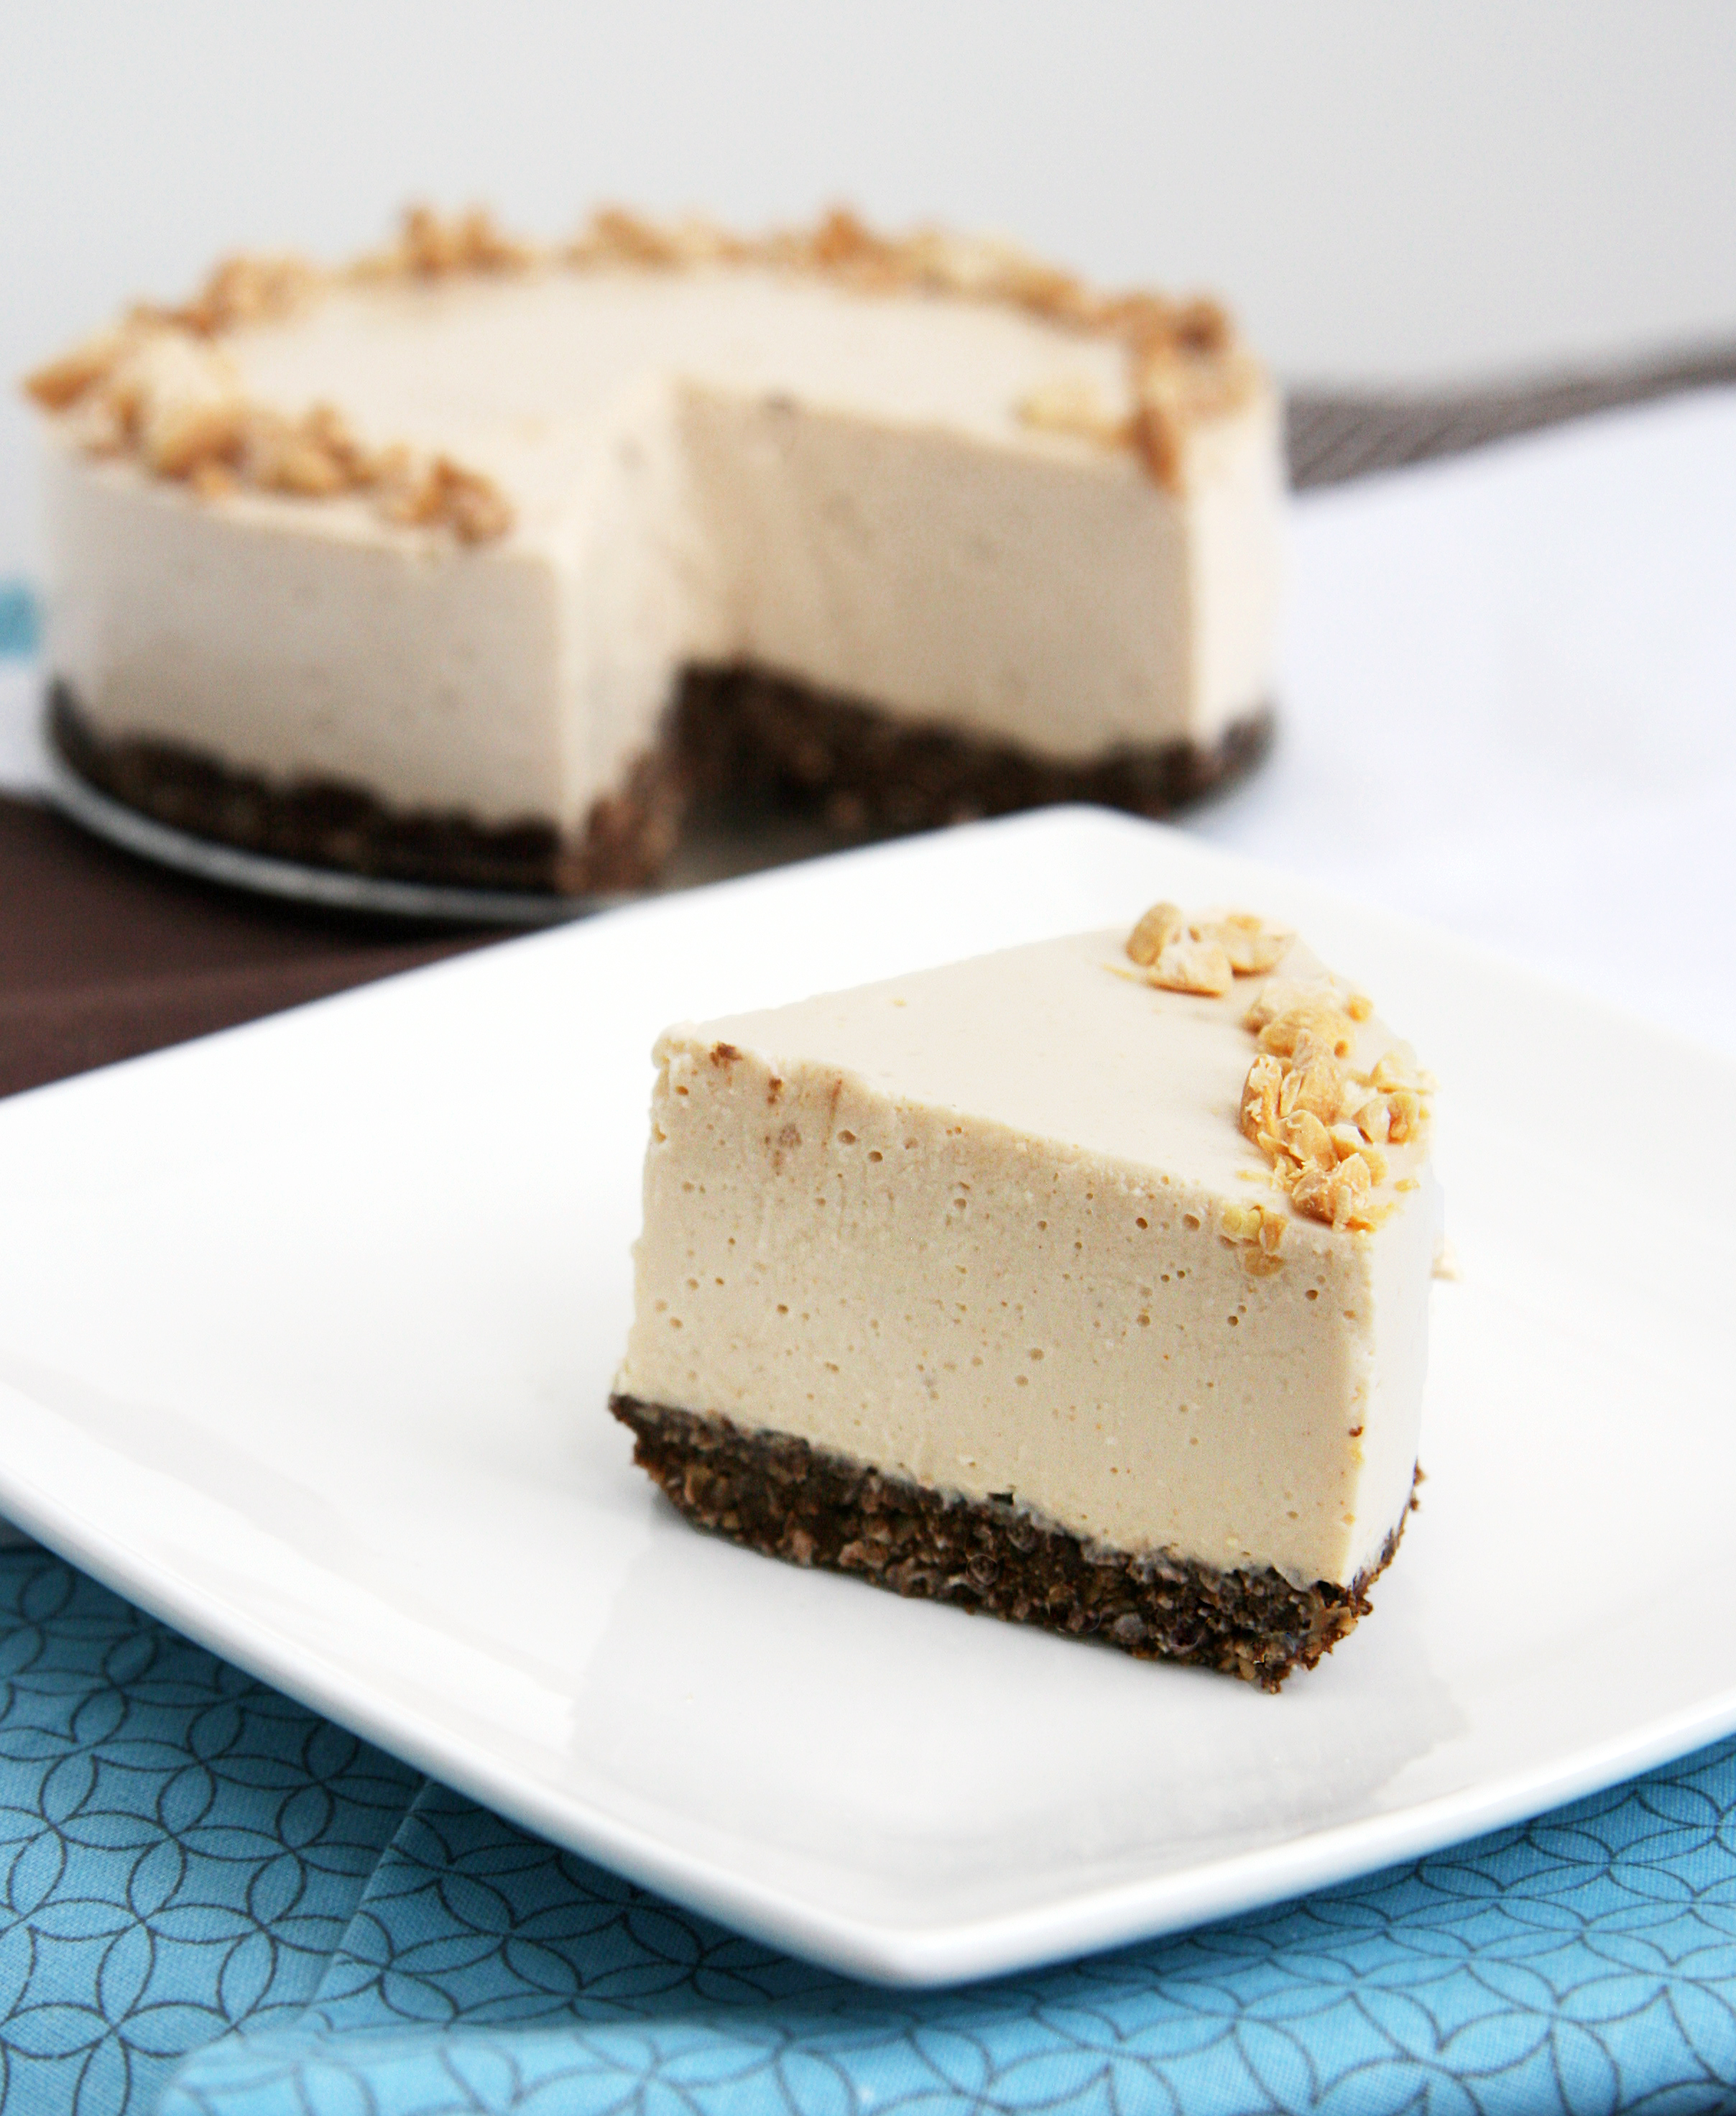 Peanut Butter Cottage Cheese Cake